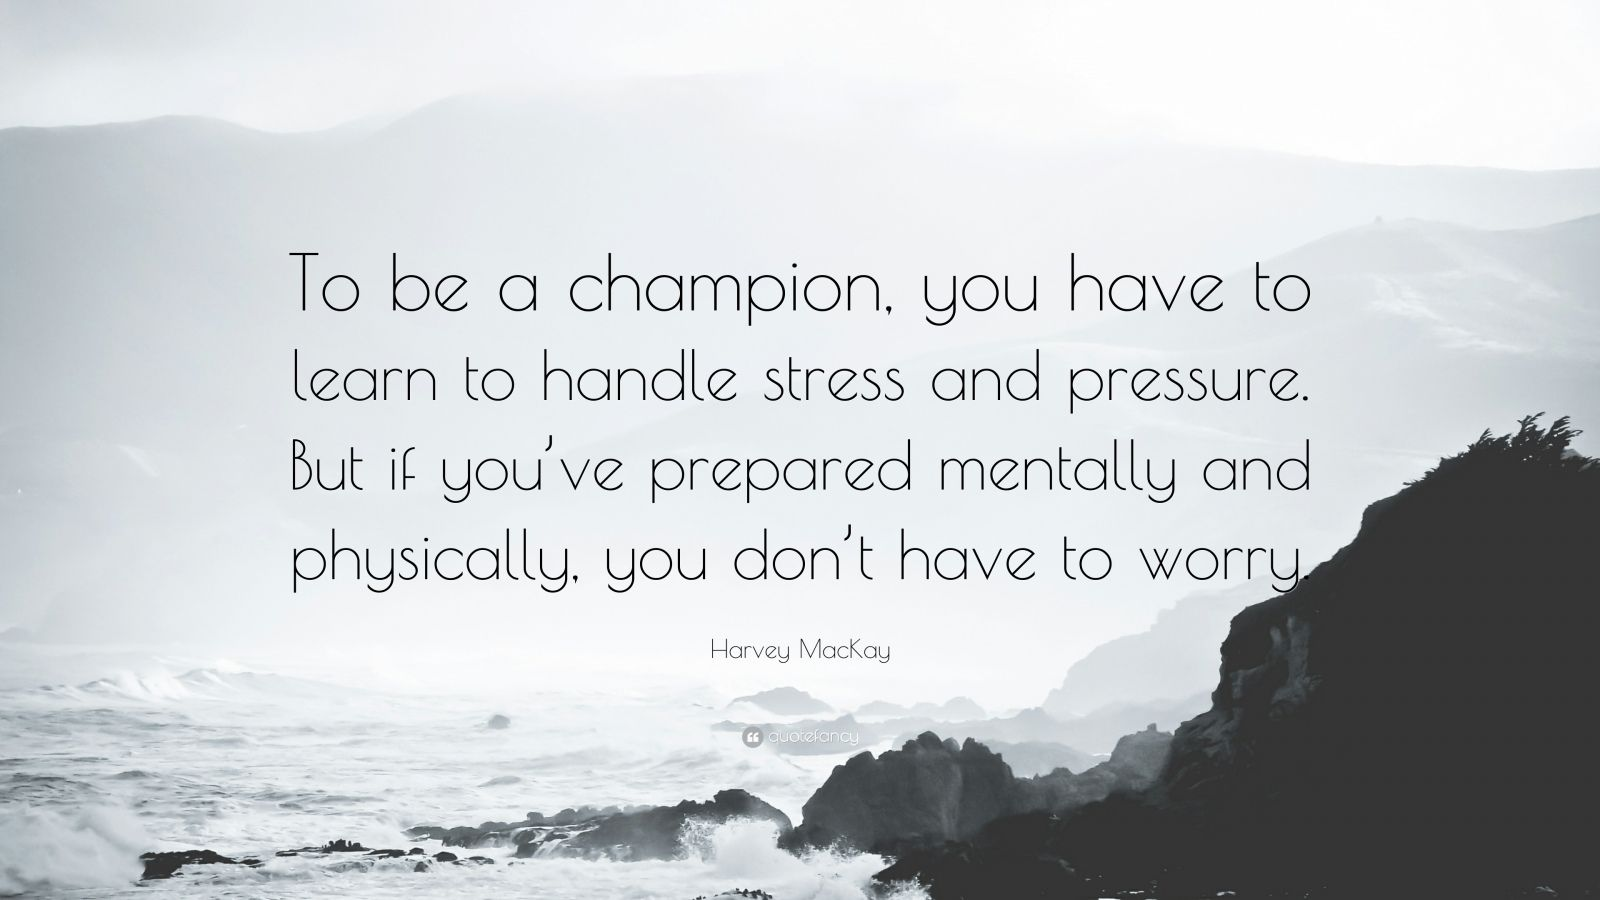 harvey mackay quotes 100 quotefancy harvey mackay quote to be a champion you have to learn to handle